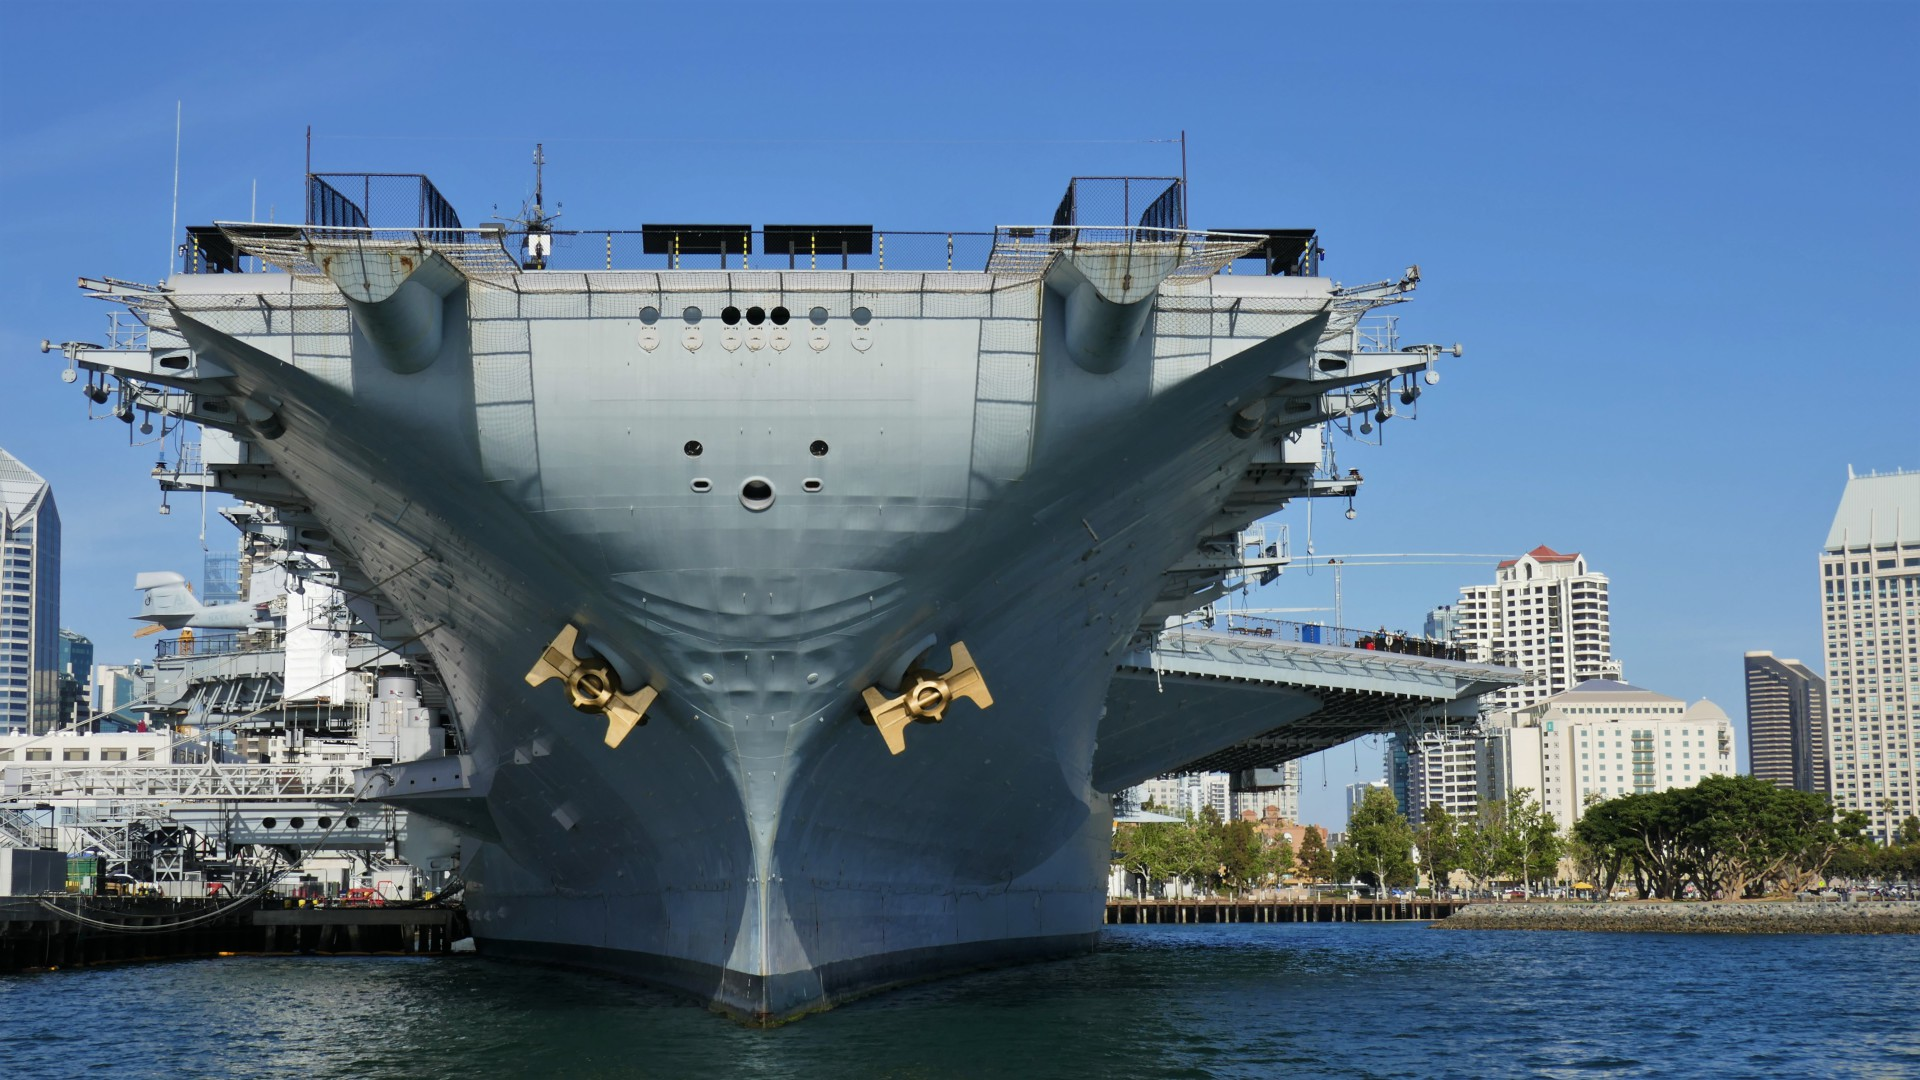 The bow of the USS Midway